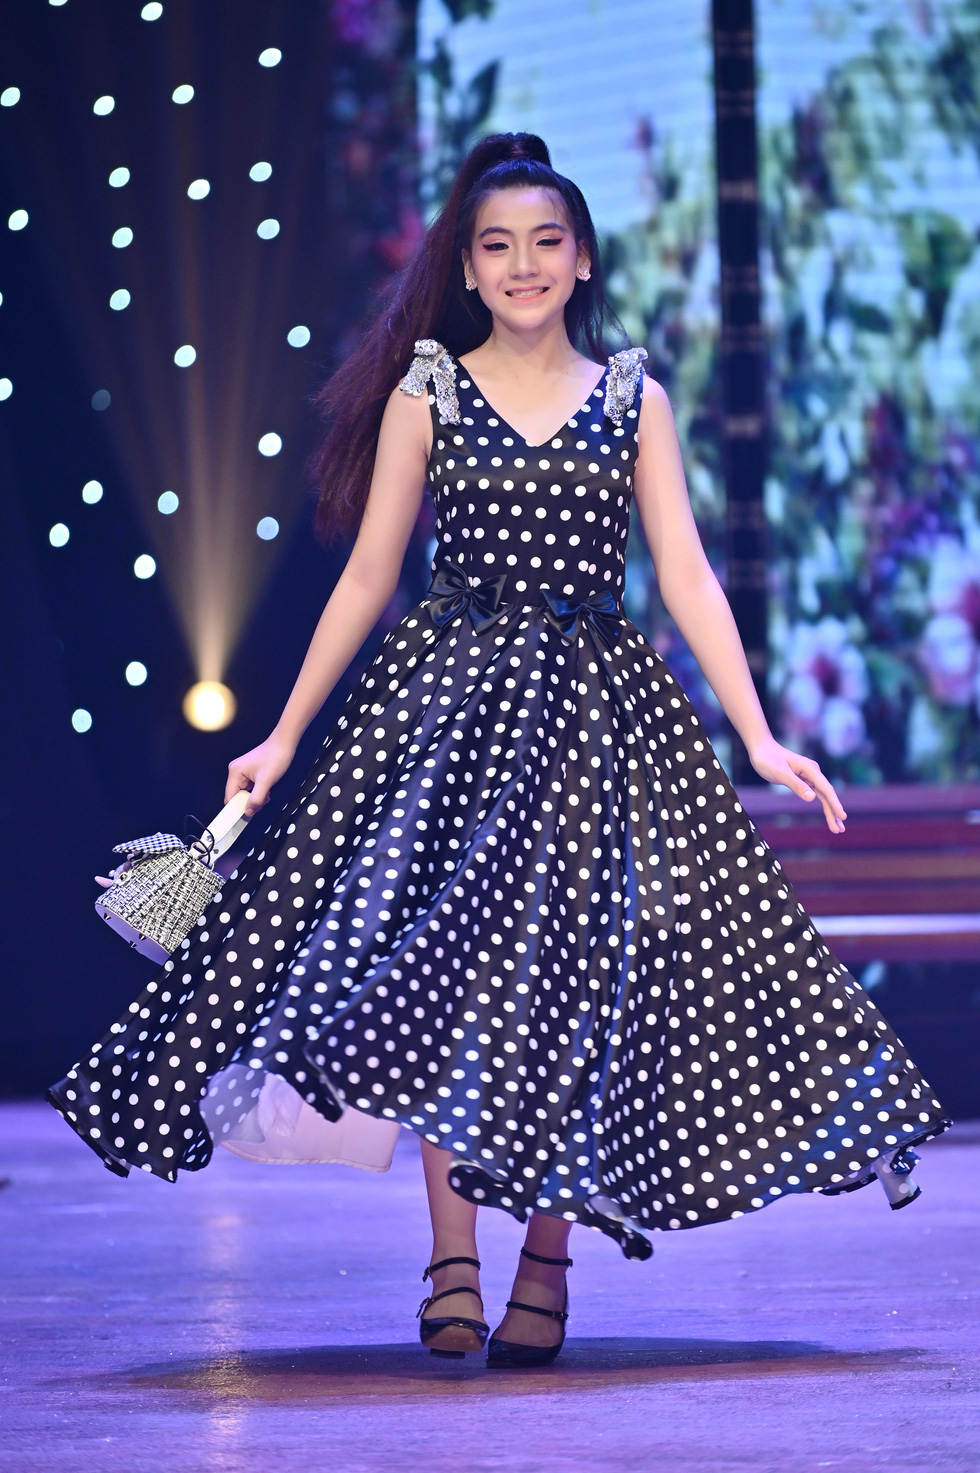 Luong Thuy Linh and Kieu Loan transform into gorgeous, personality dolls - Photo 5.